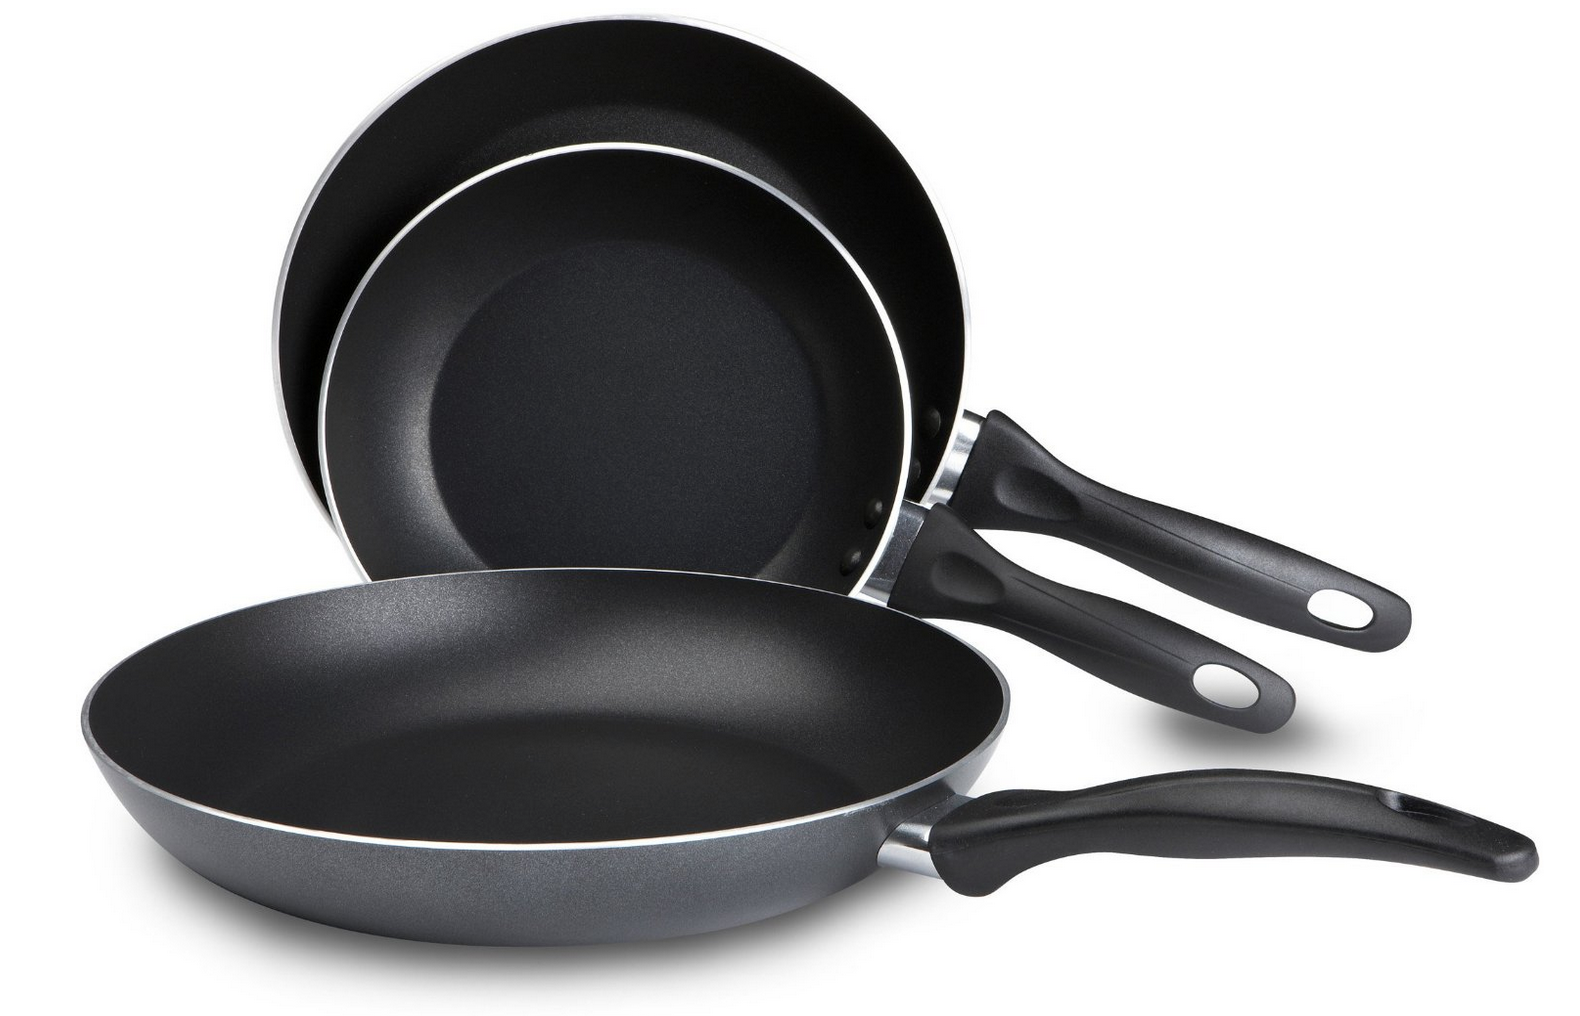 T-fal Nonstick 8-Inch, 9.5-Inch, 11-Inch Fry Pan Cookware Set Only $15.51 (Reg. $29.99!)